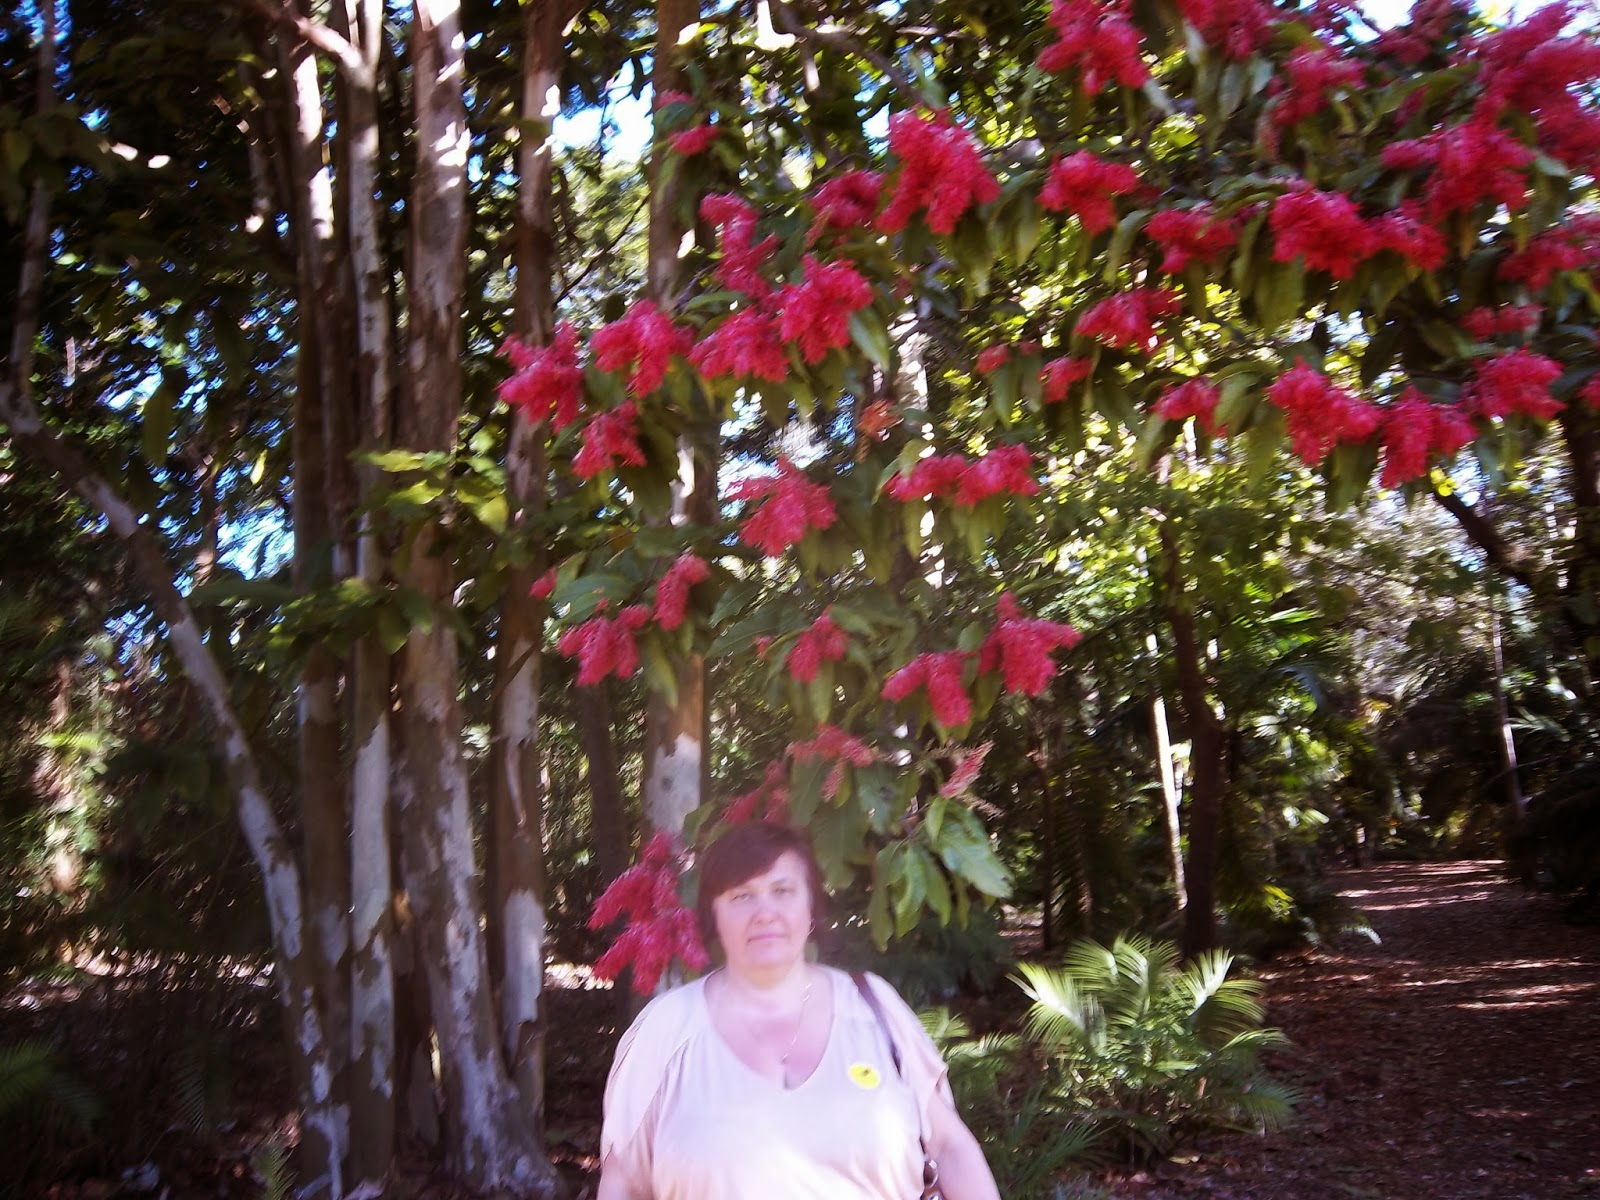 Liliana usvat reforestation and medicinal use of the trees the andes between panama and bolivia with large glossy leaves cream colored flowers on male trees and pink to bright red flowers on female trees mightylinksfo